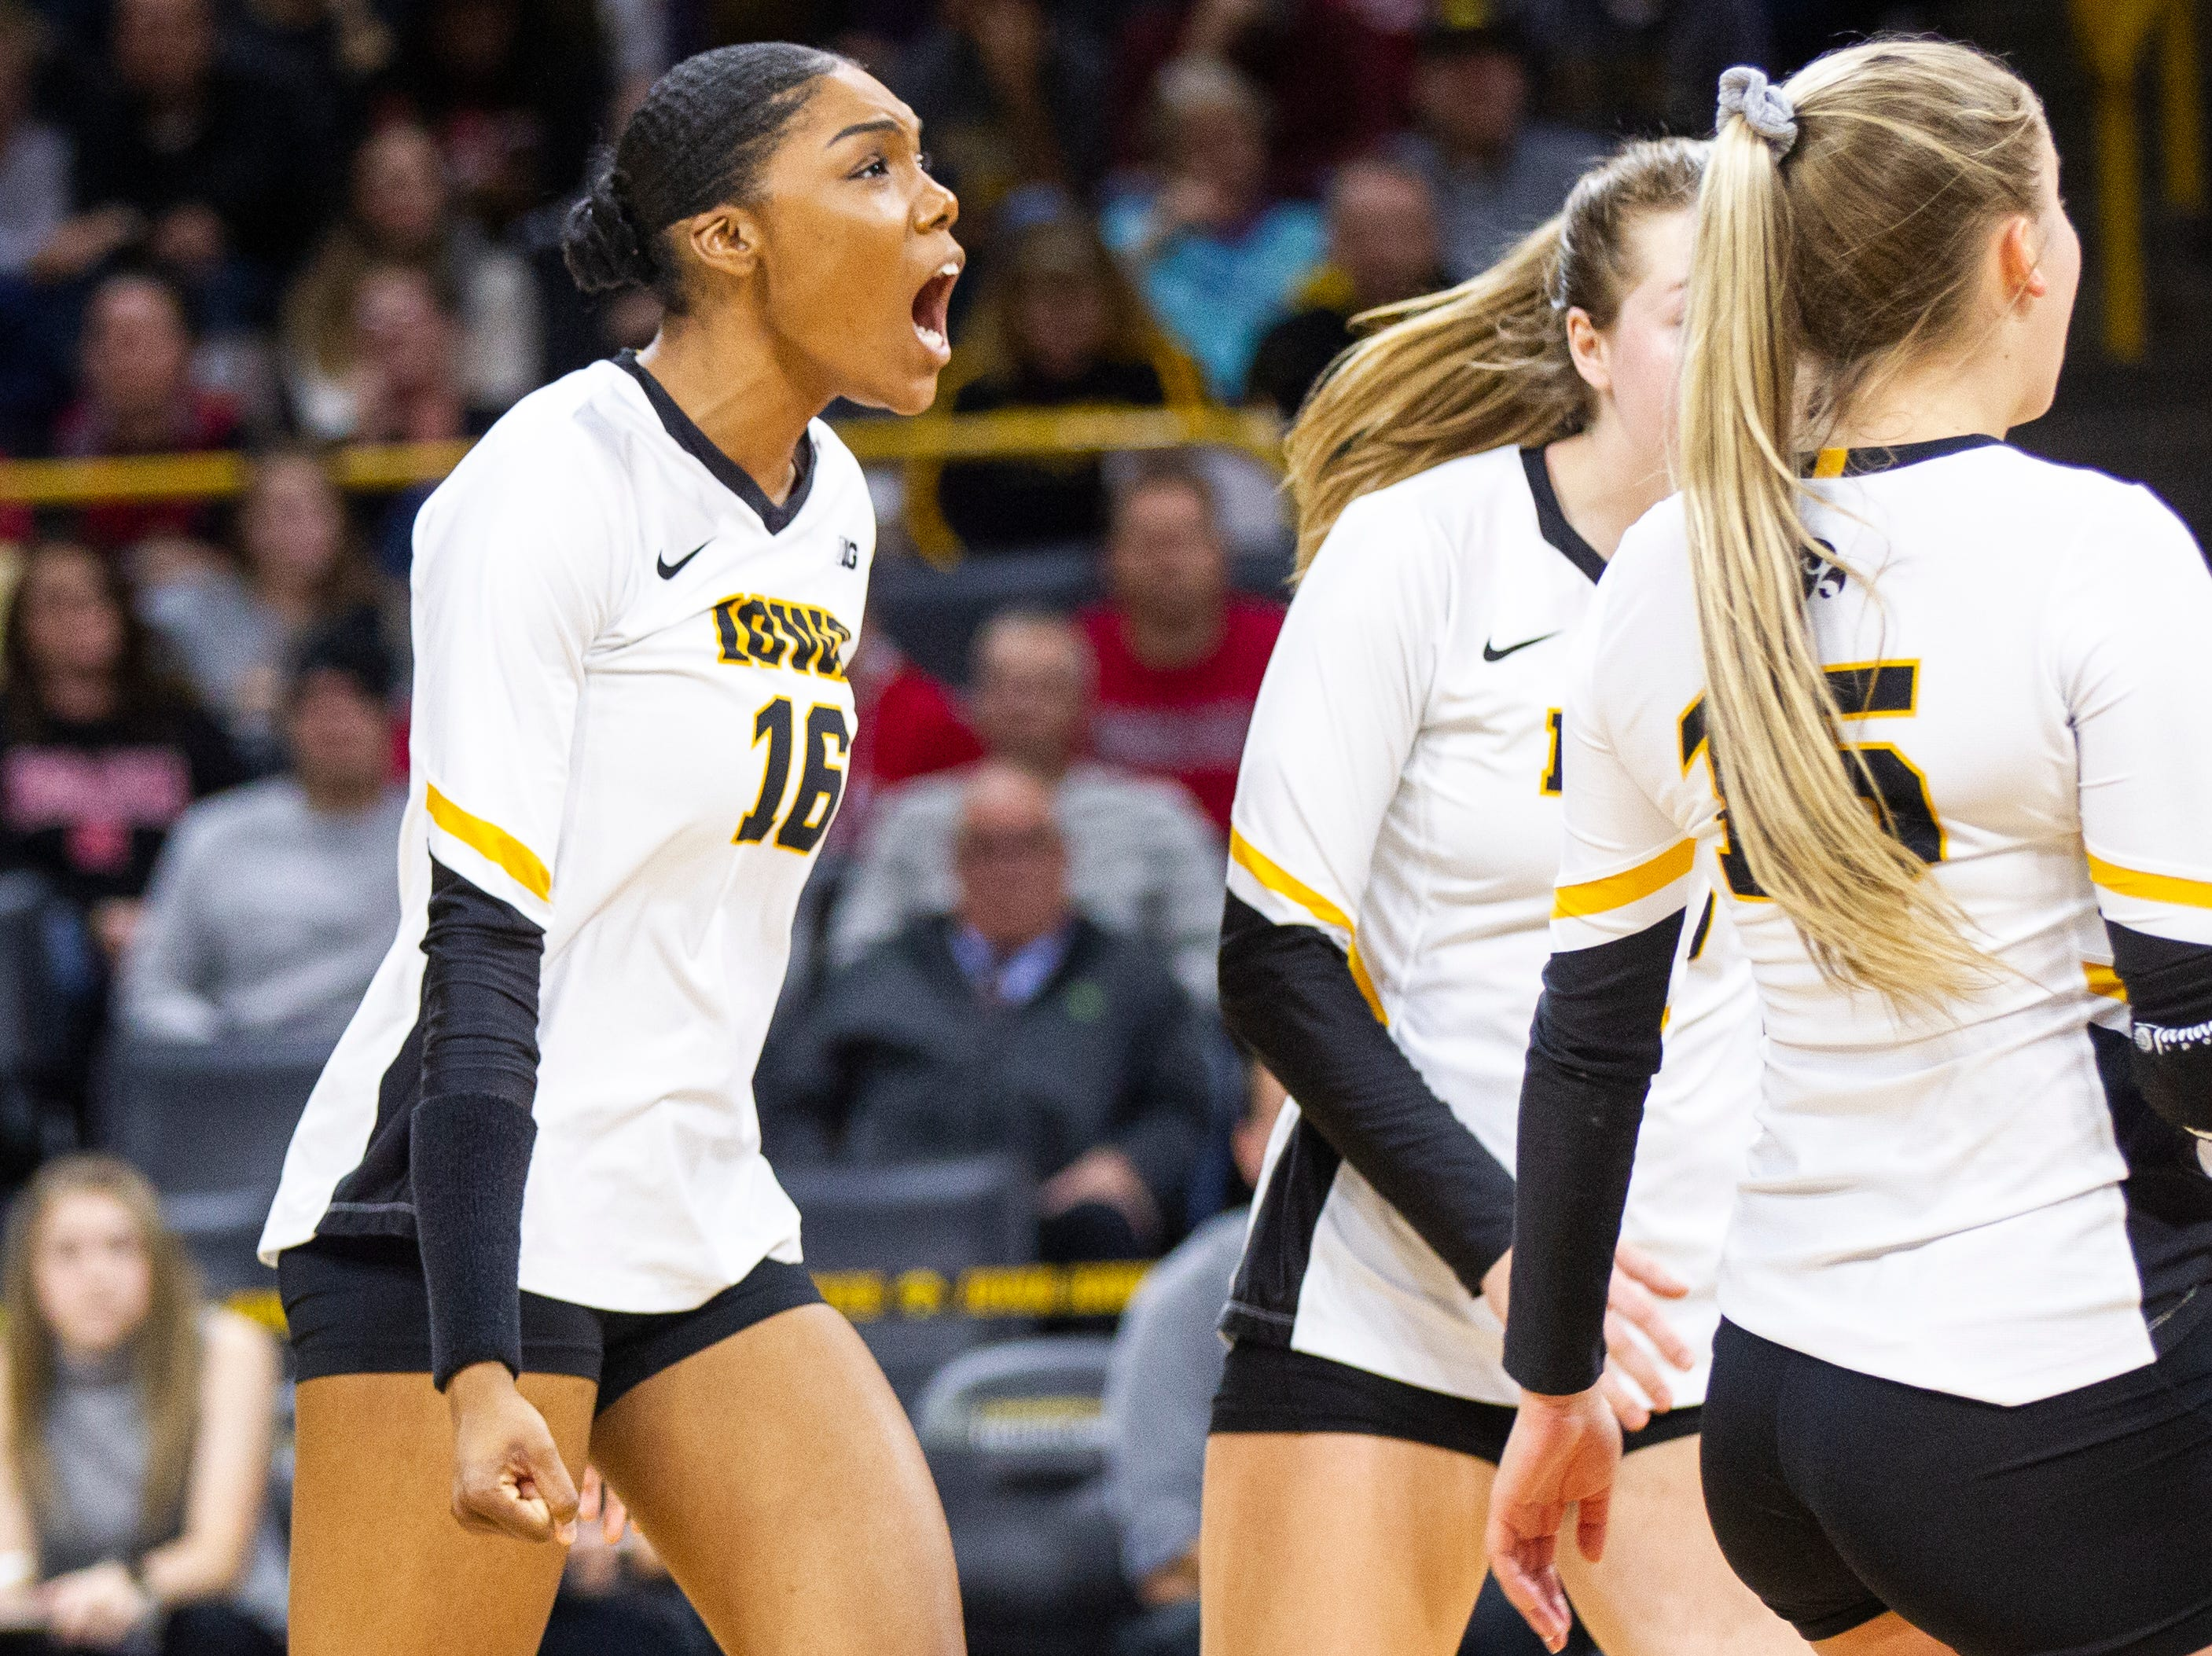 Iowa outside hitter Taylor Louis (16) celebrates a point during an NCAA volleyball game on Wednesday, Nov. 7, 2018, at Carver-Hawkeye Arena in Iowa City.